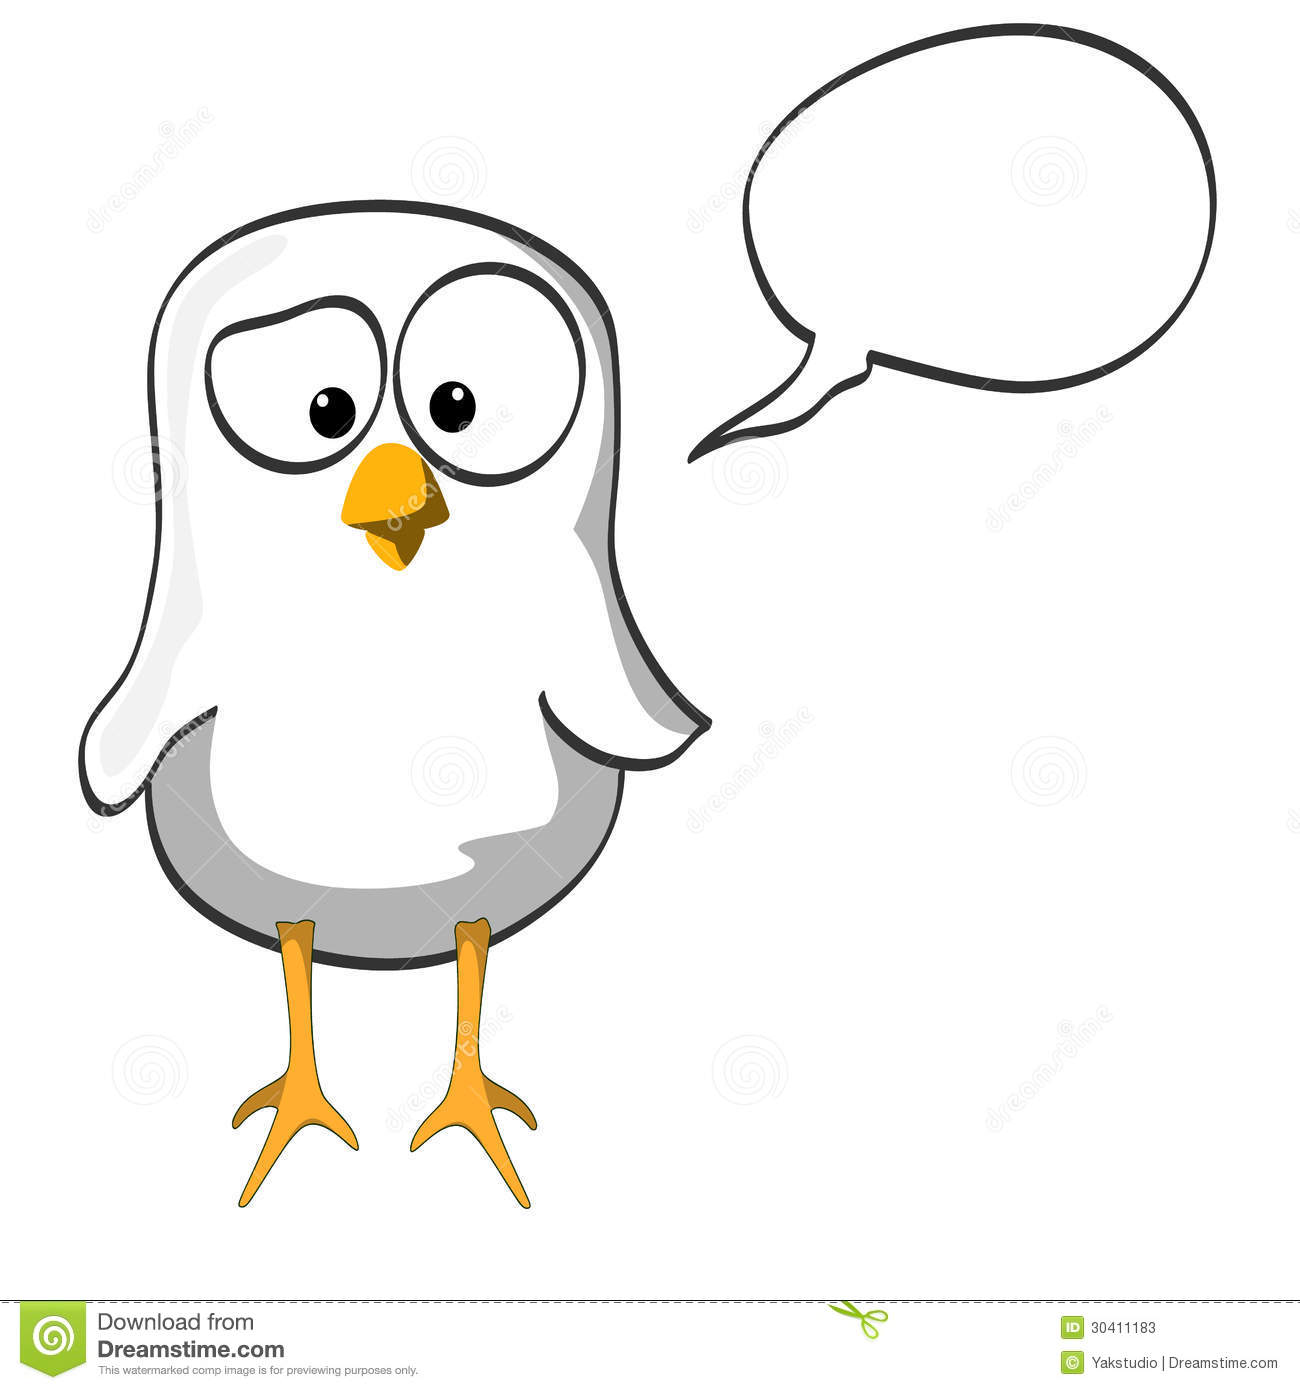 Black and white little bird with speech bubble.